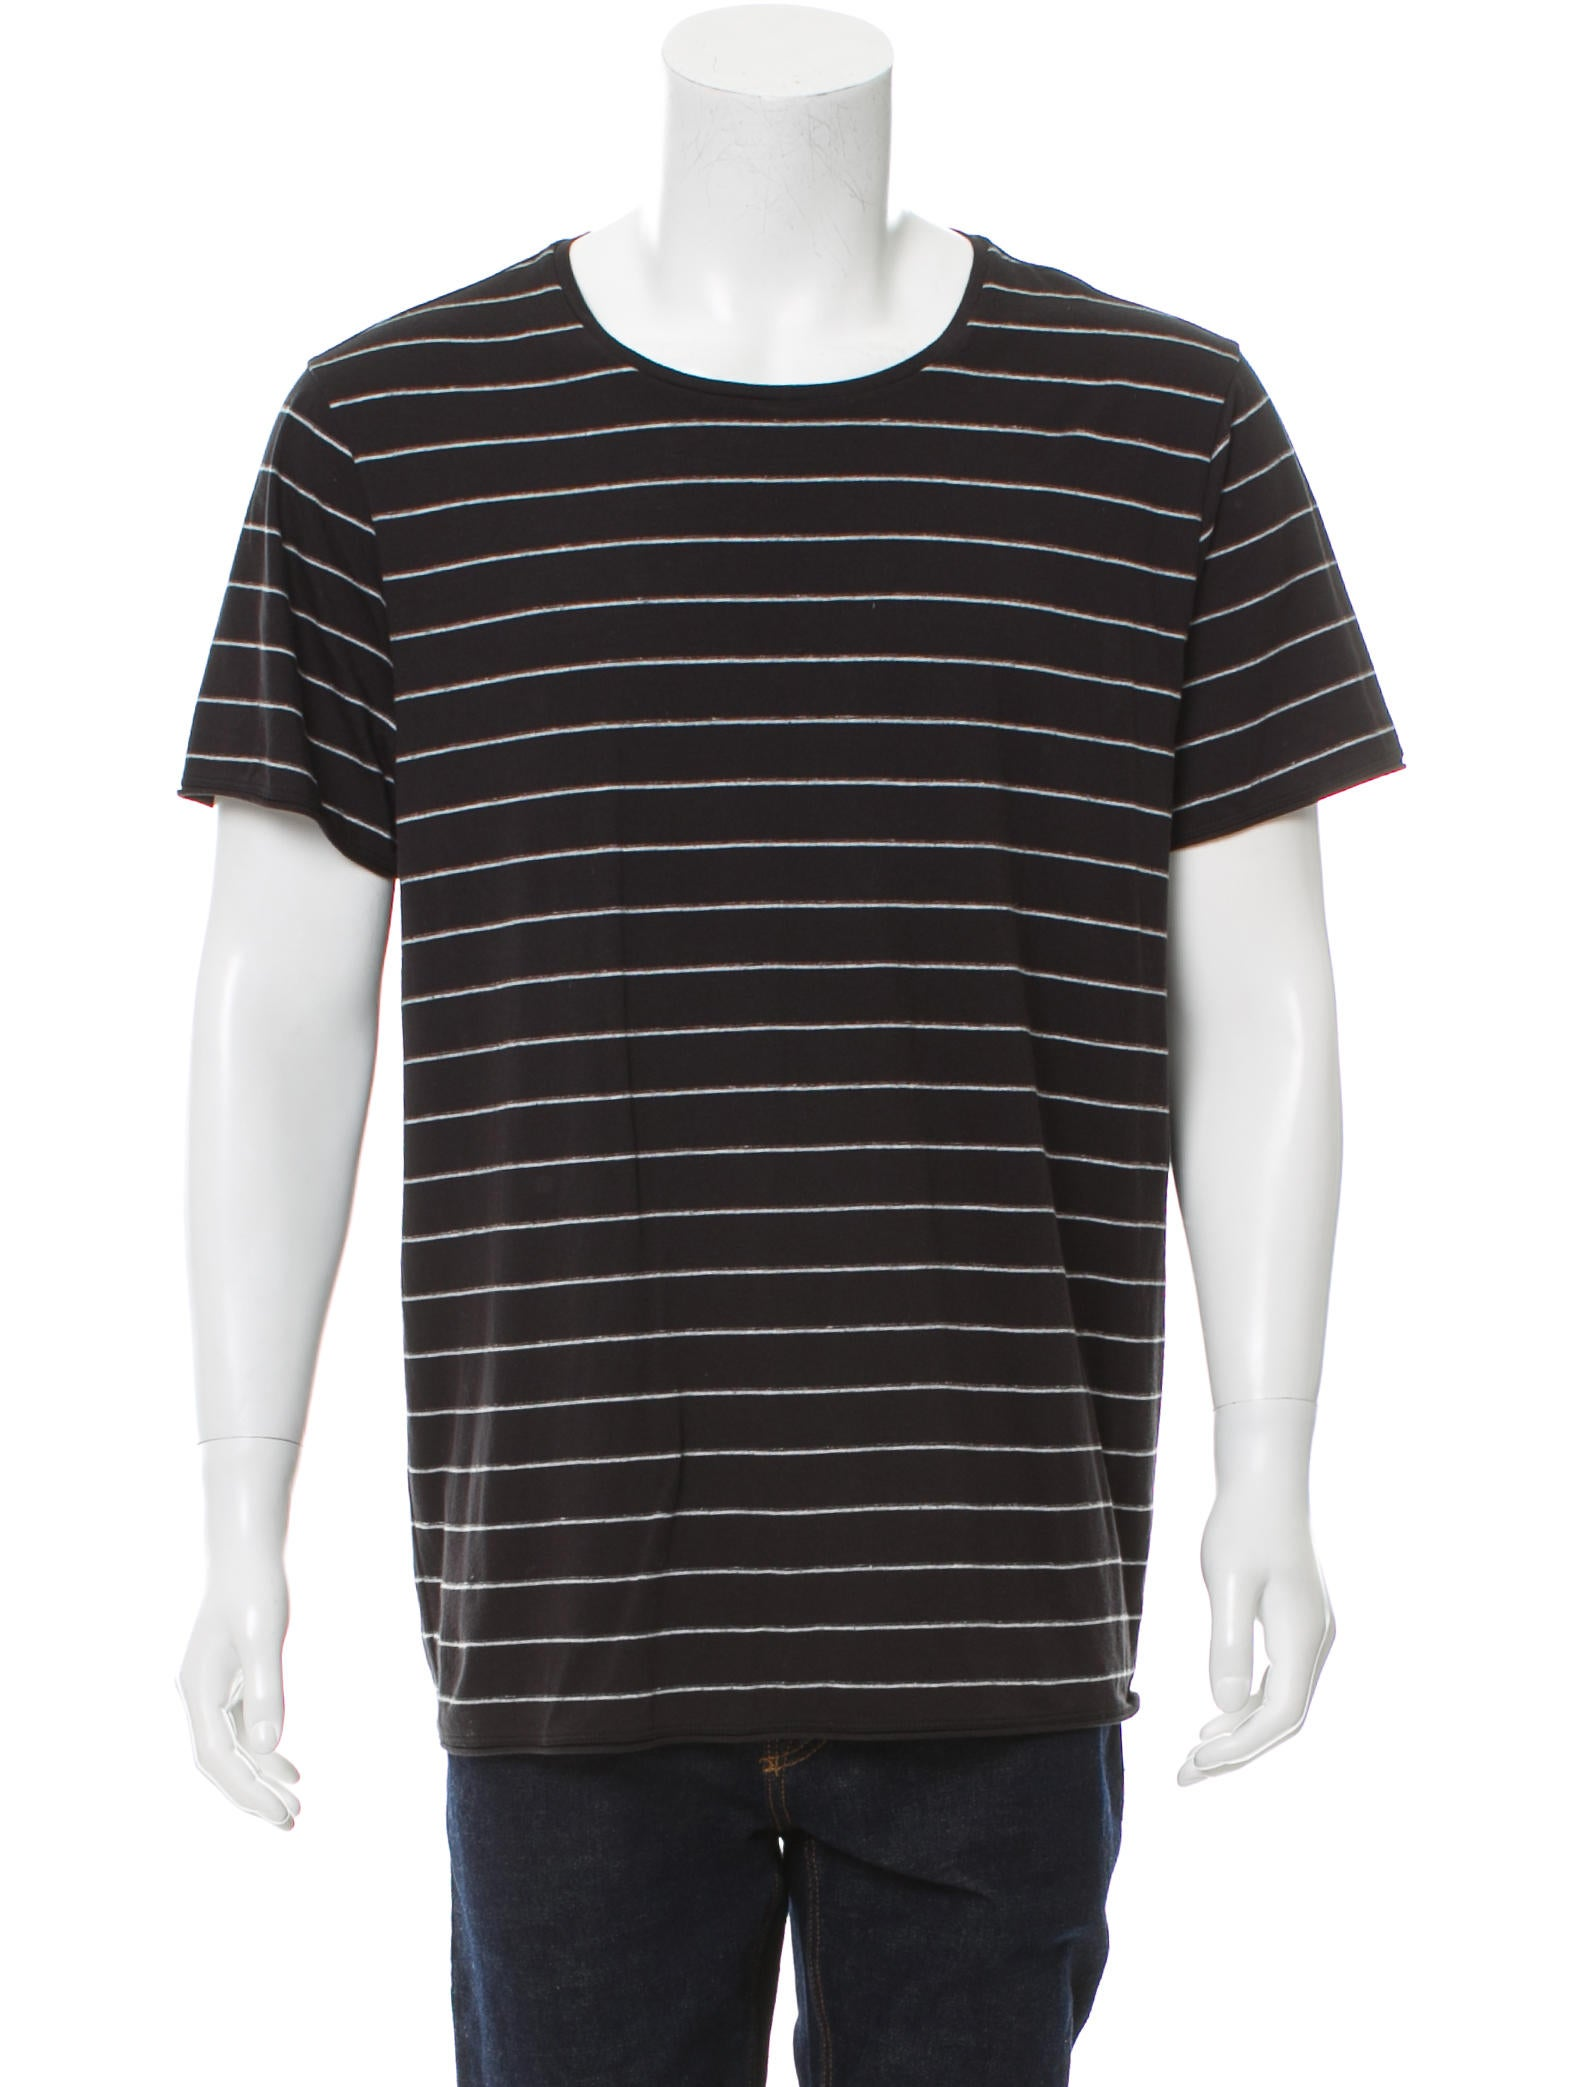 Vince striped scoop neck t shirt clothing wvn27536 for Scoop neck t shirt